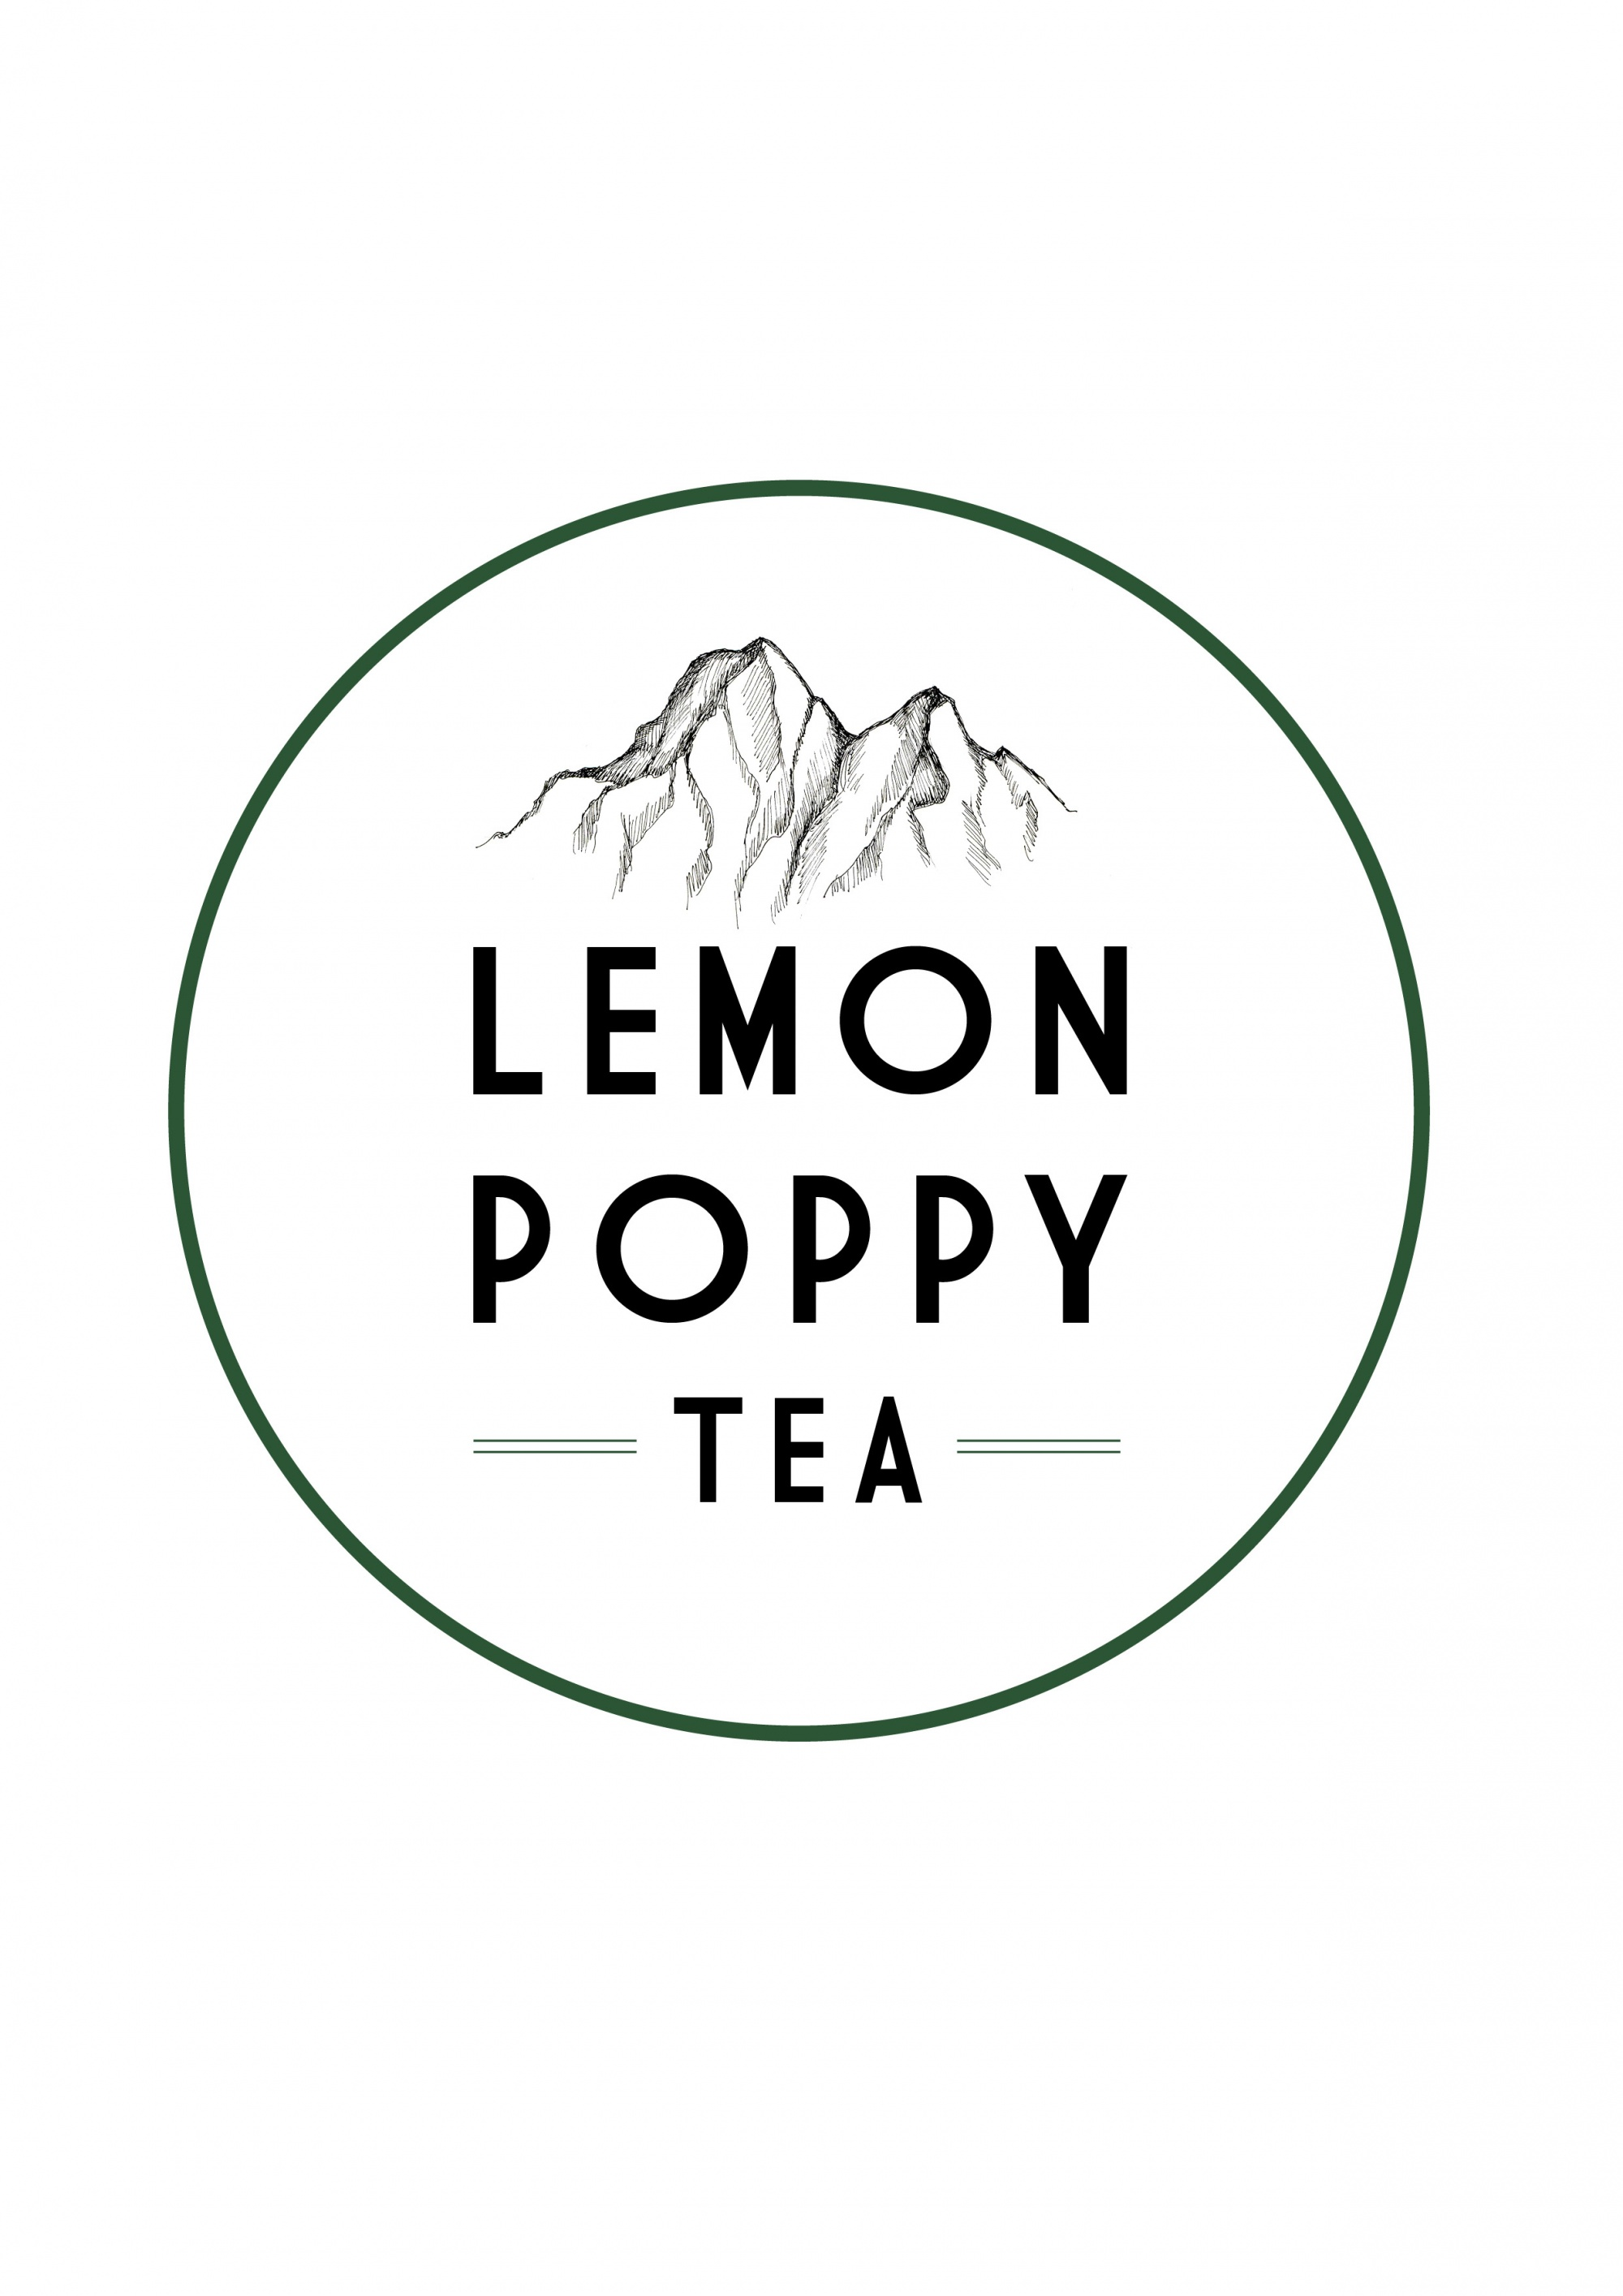 LEMON POPPY TEA